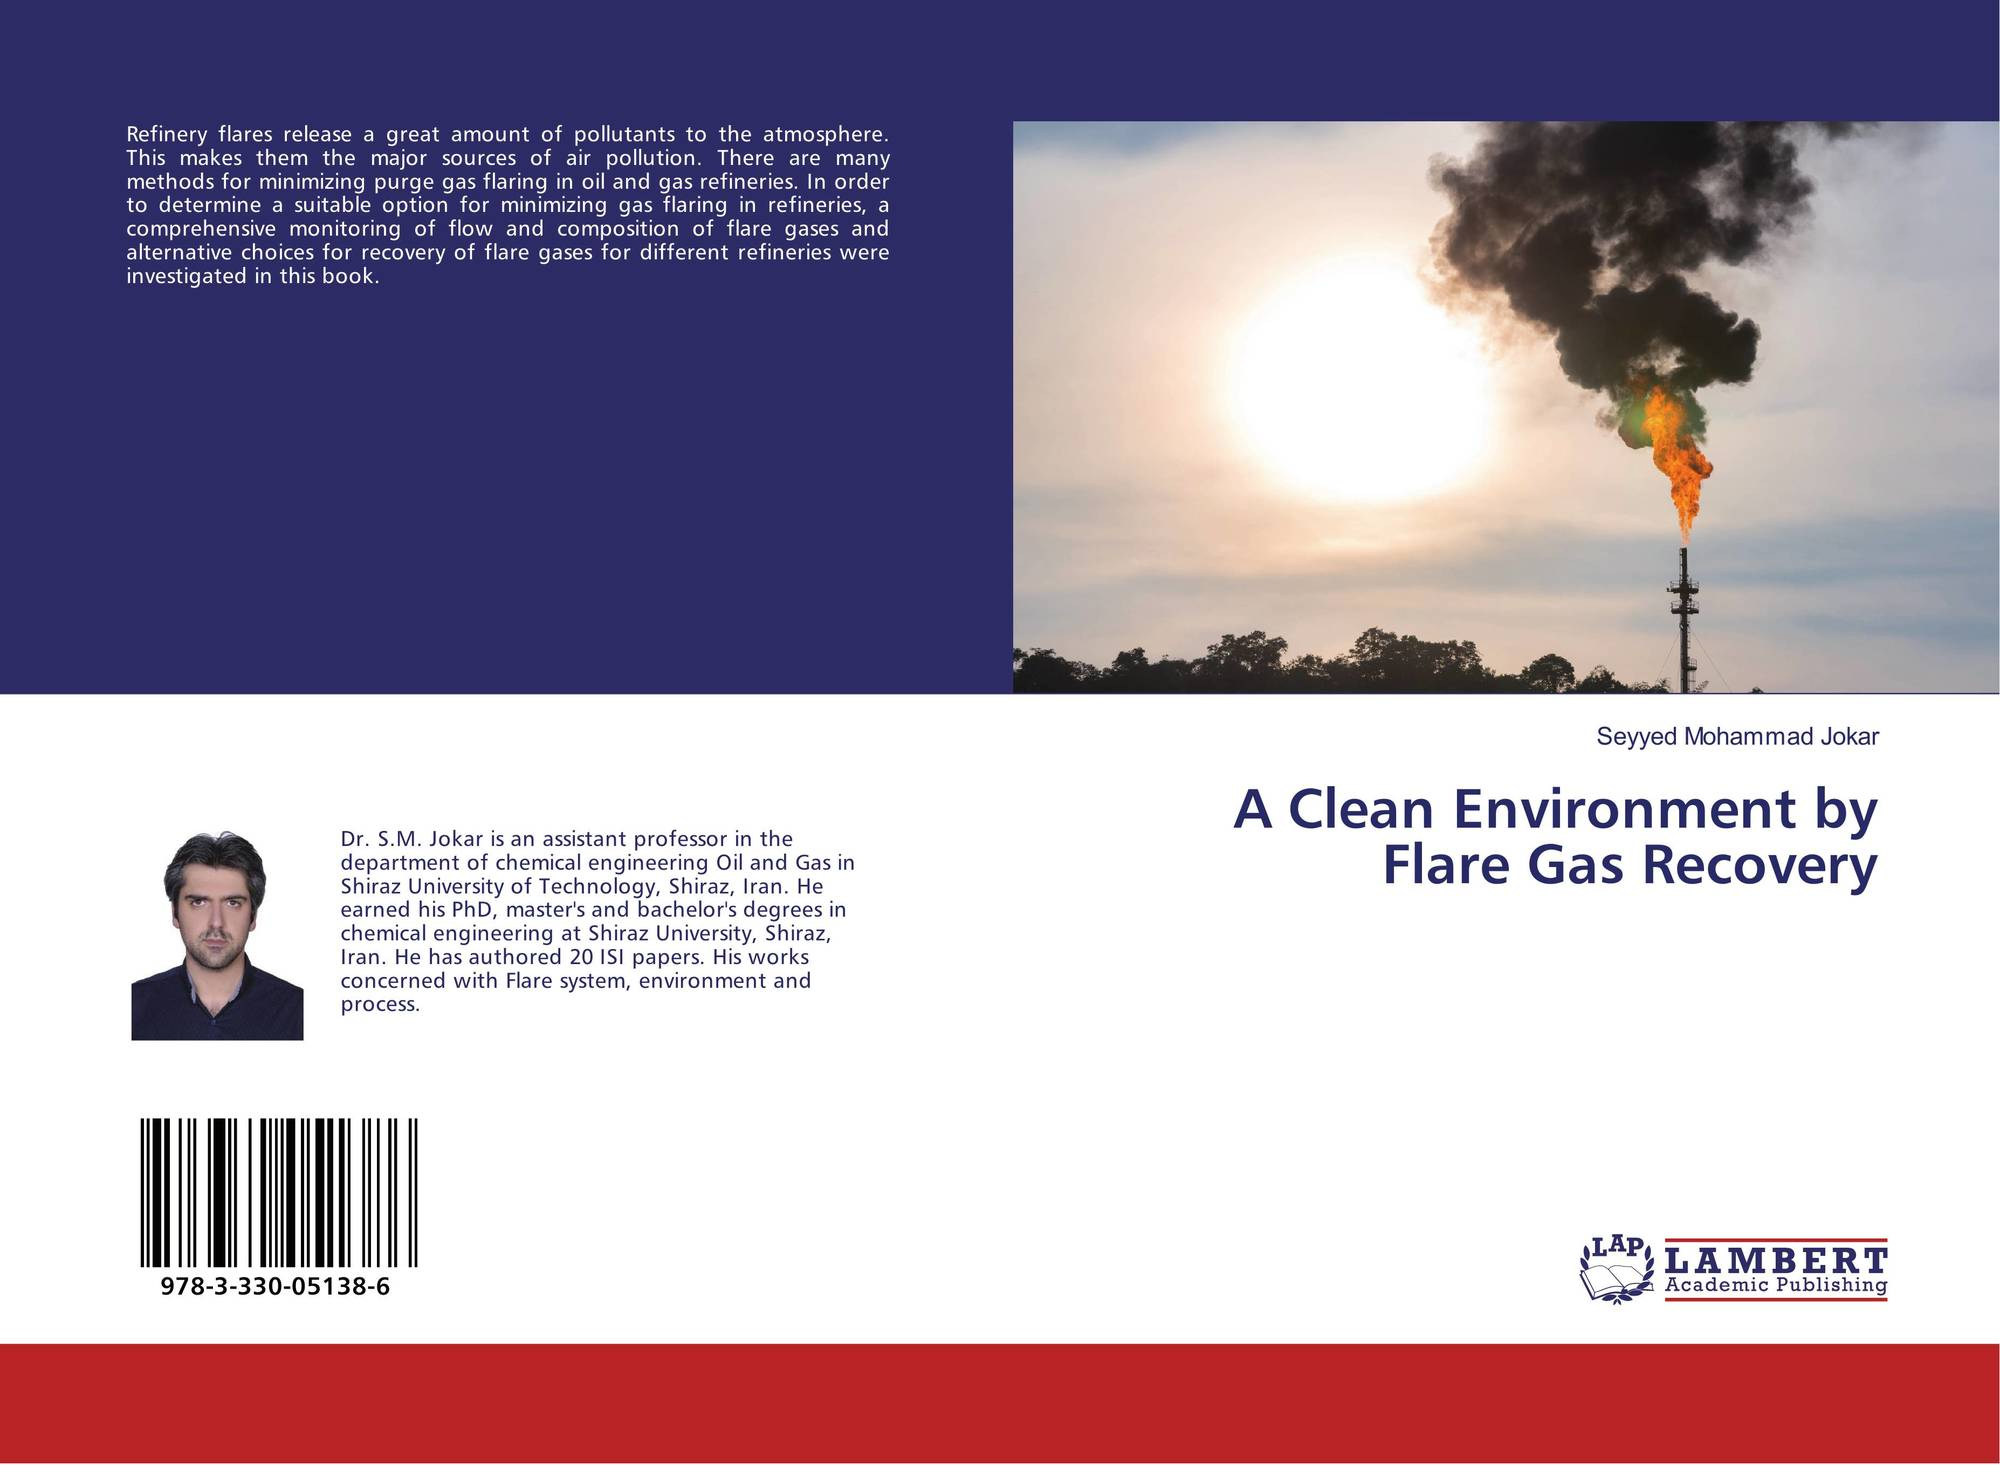 A Clean Environment by Flare Gas Recovery, 978-3-330-05138-6